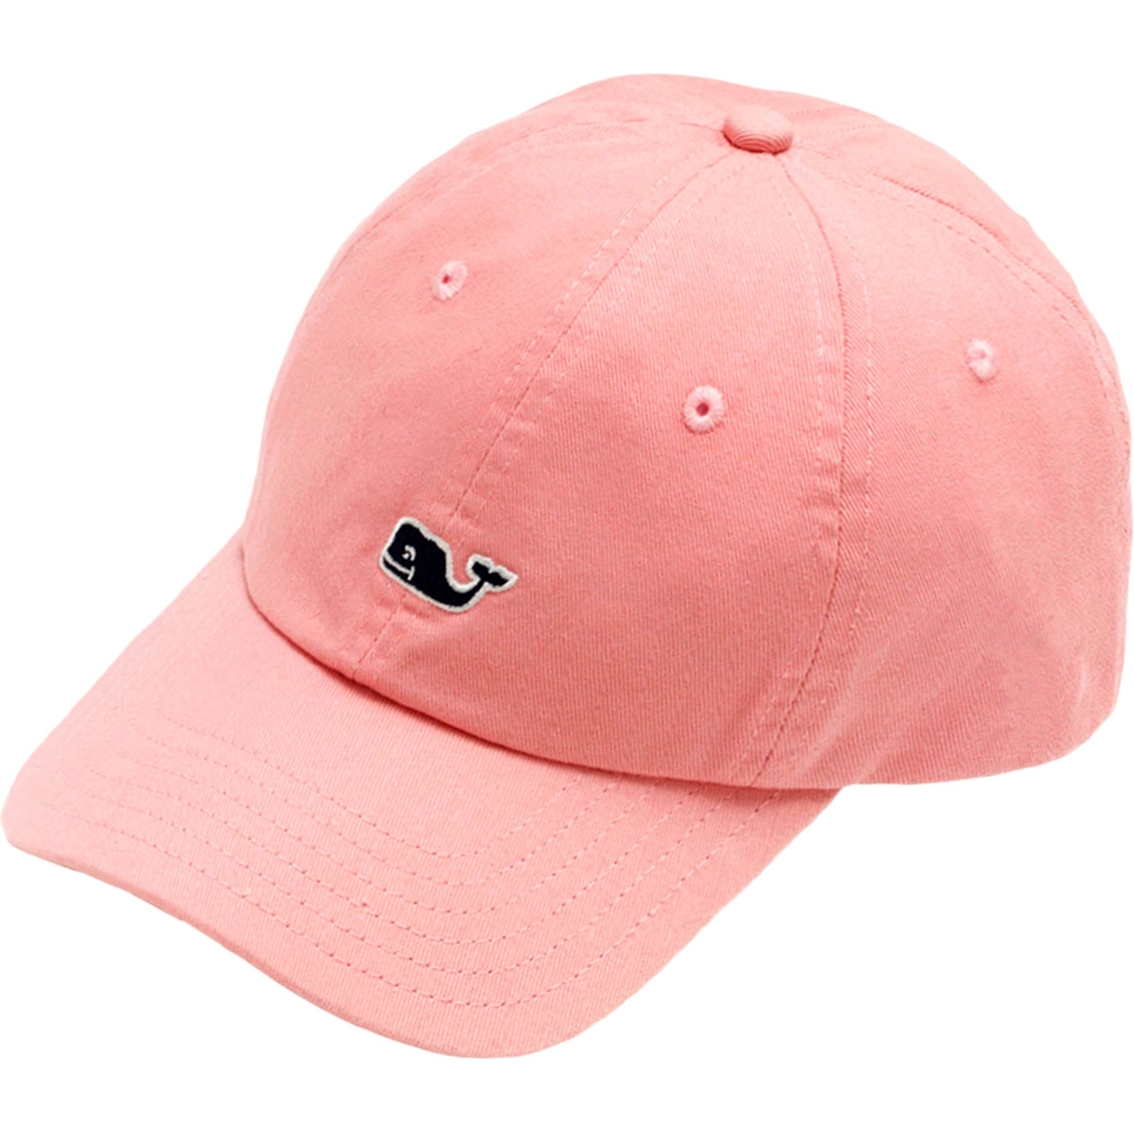 502f595f6afb0 Vineyard Vines Whale Logo Baseball Hat